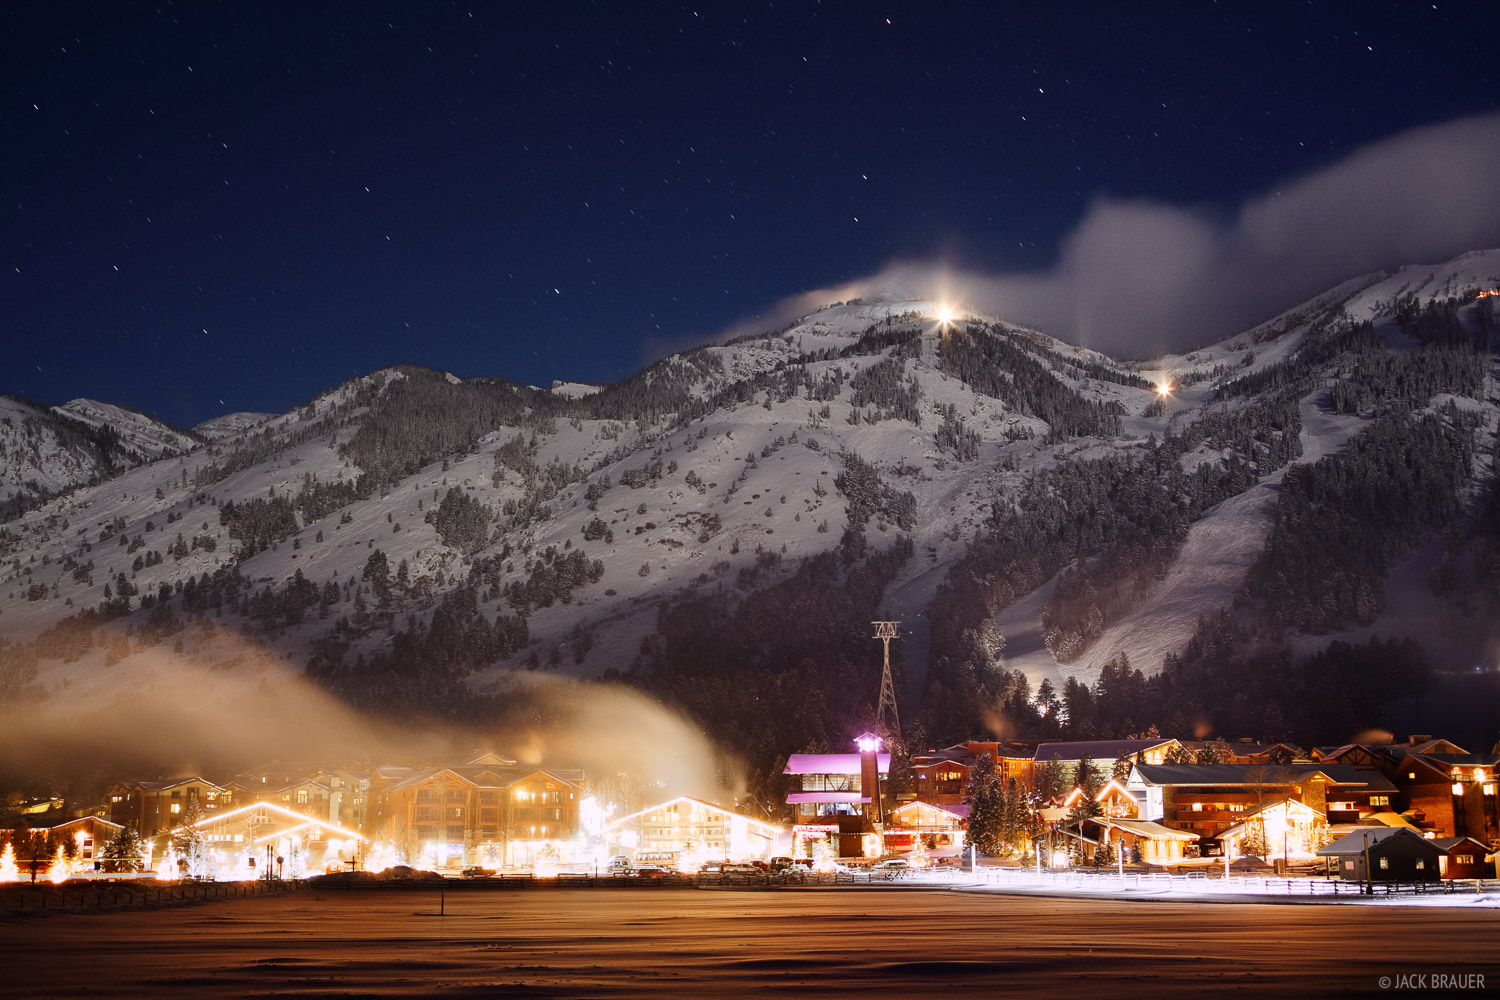 Jackson Hole, Teton Village, Wyoming, night, photo